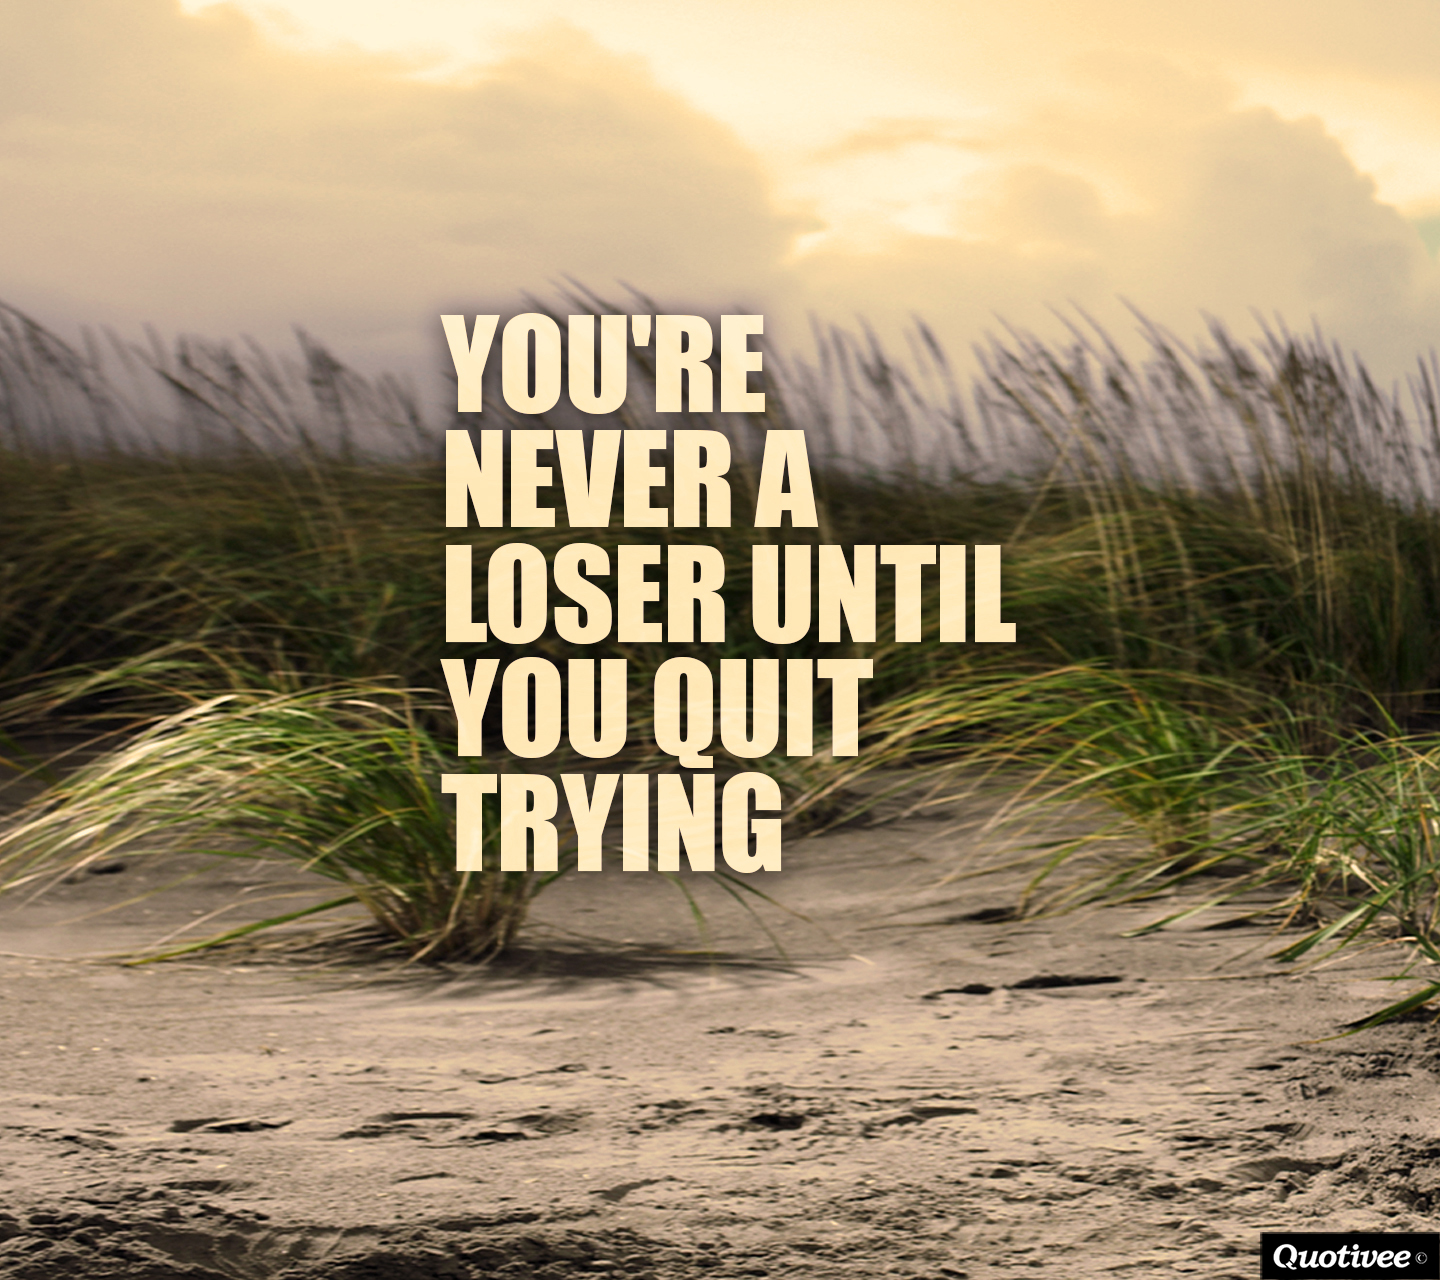 Quotes On Life In Hindi Wallpapers You're Never A Loser U...